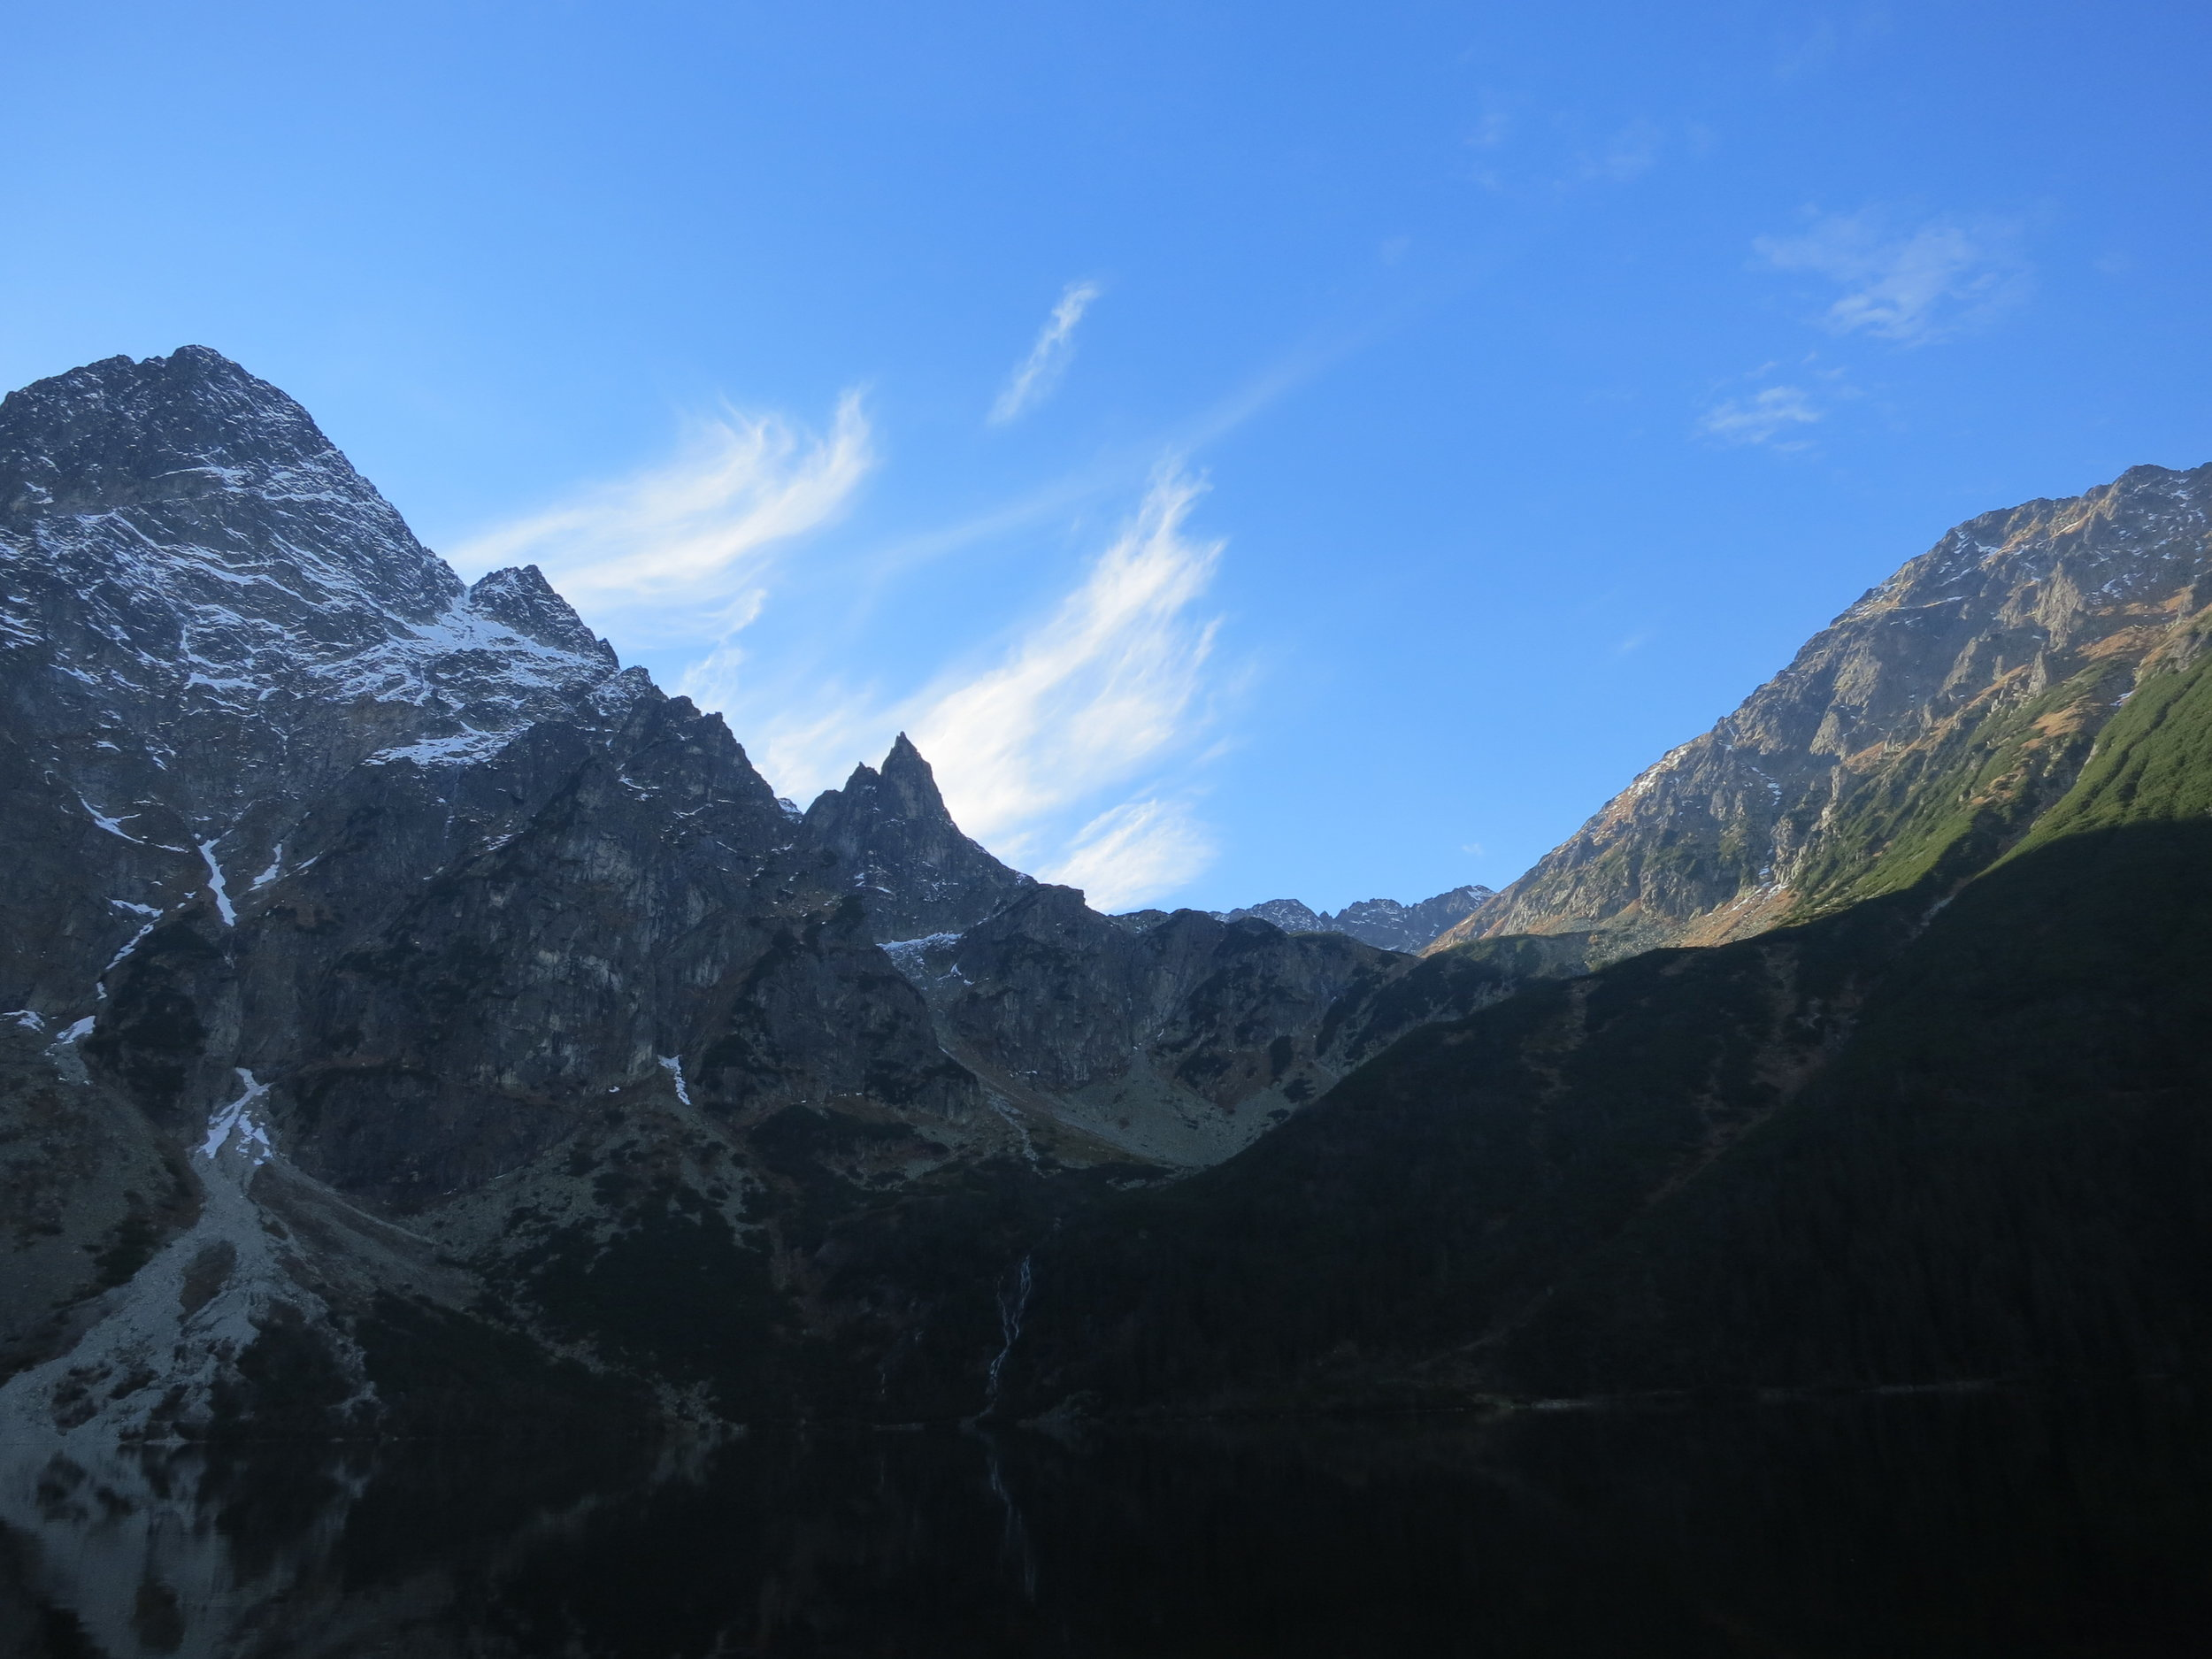 A view of Mount Rys, the tallest peak in the Polish Tatra Mountains.